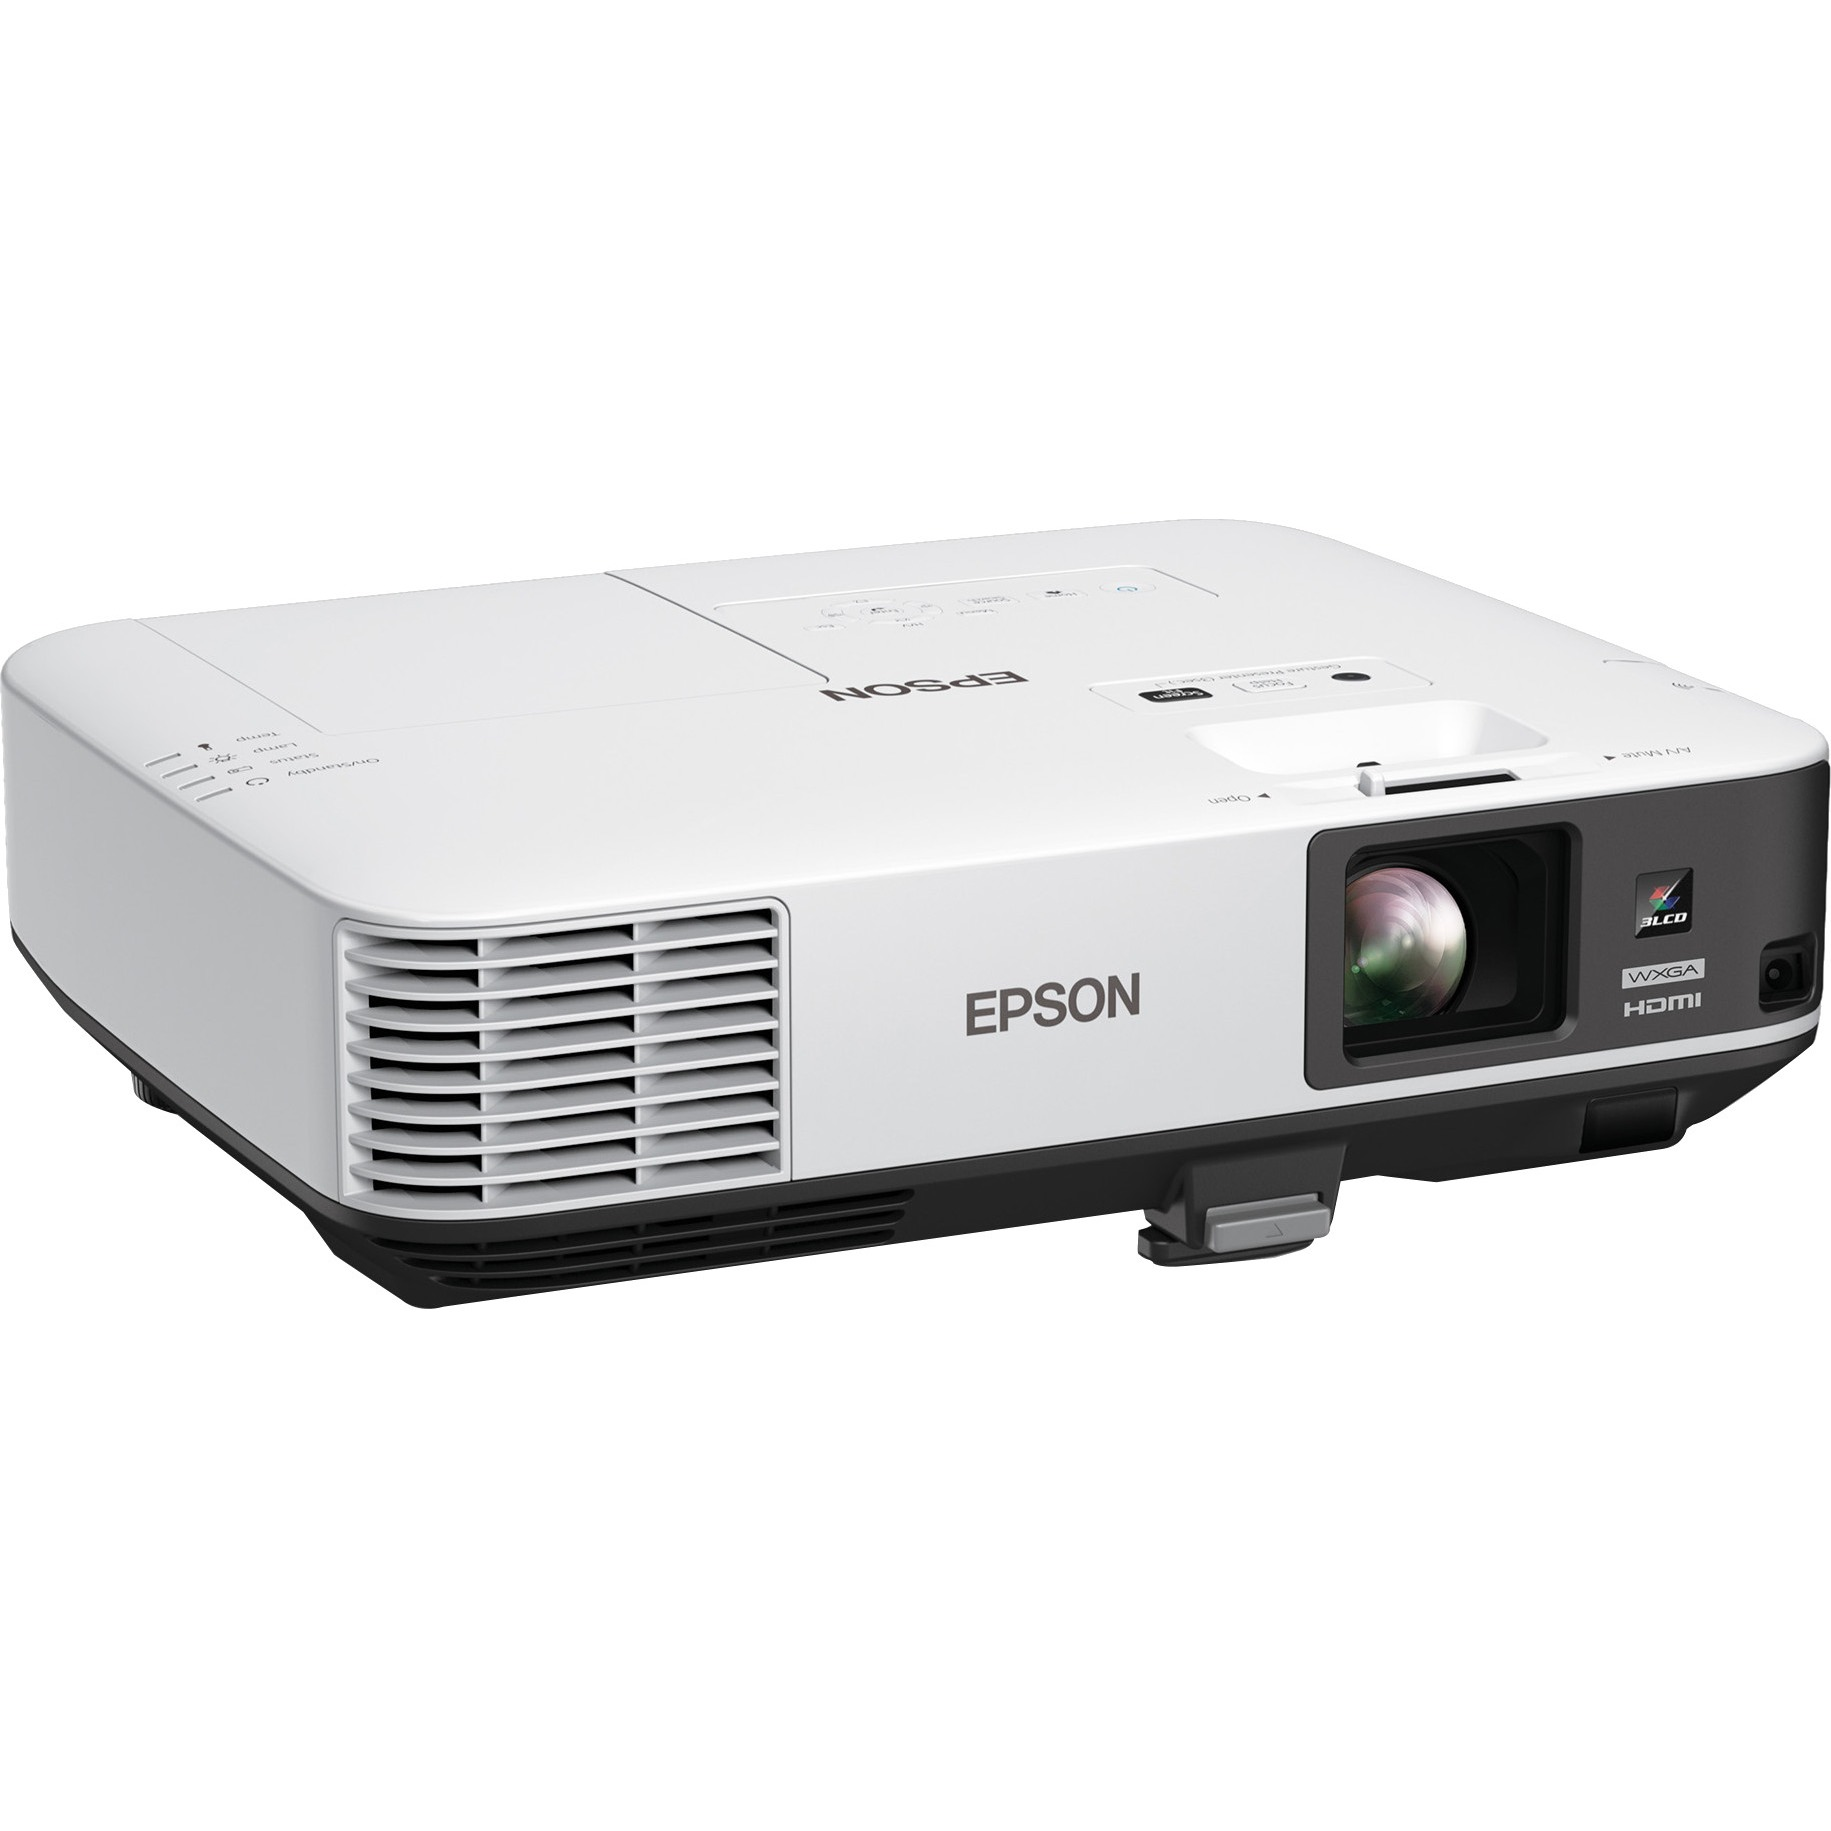 Epson PowerLite 975W WXGA 3LCD Projector by Epson Corporation